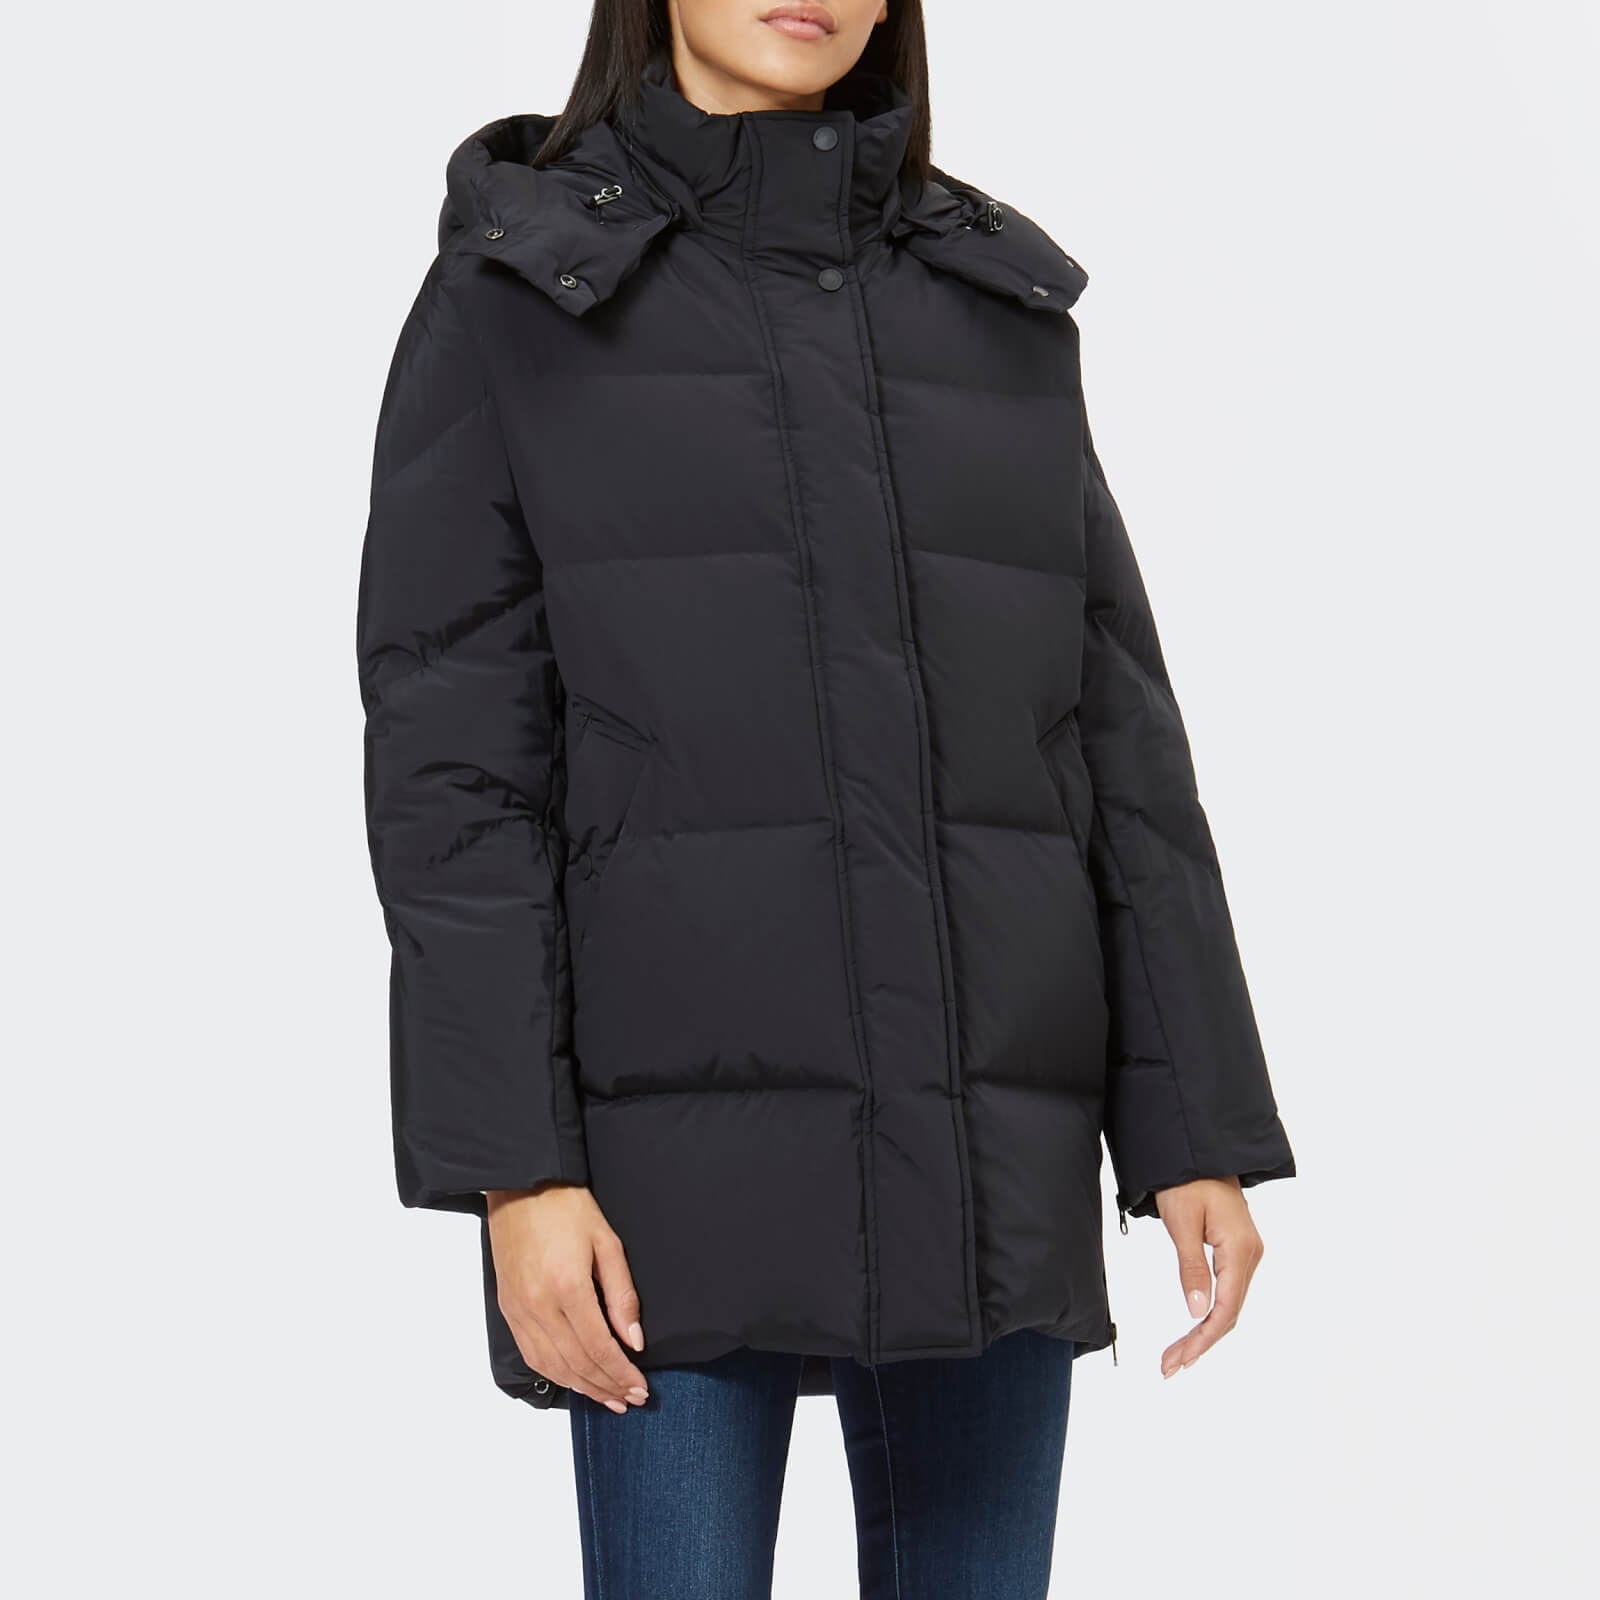 separation shoes 84fc8 e1ddb Woolrich Women's Aurora Puffy Coat - Black